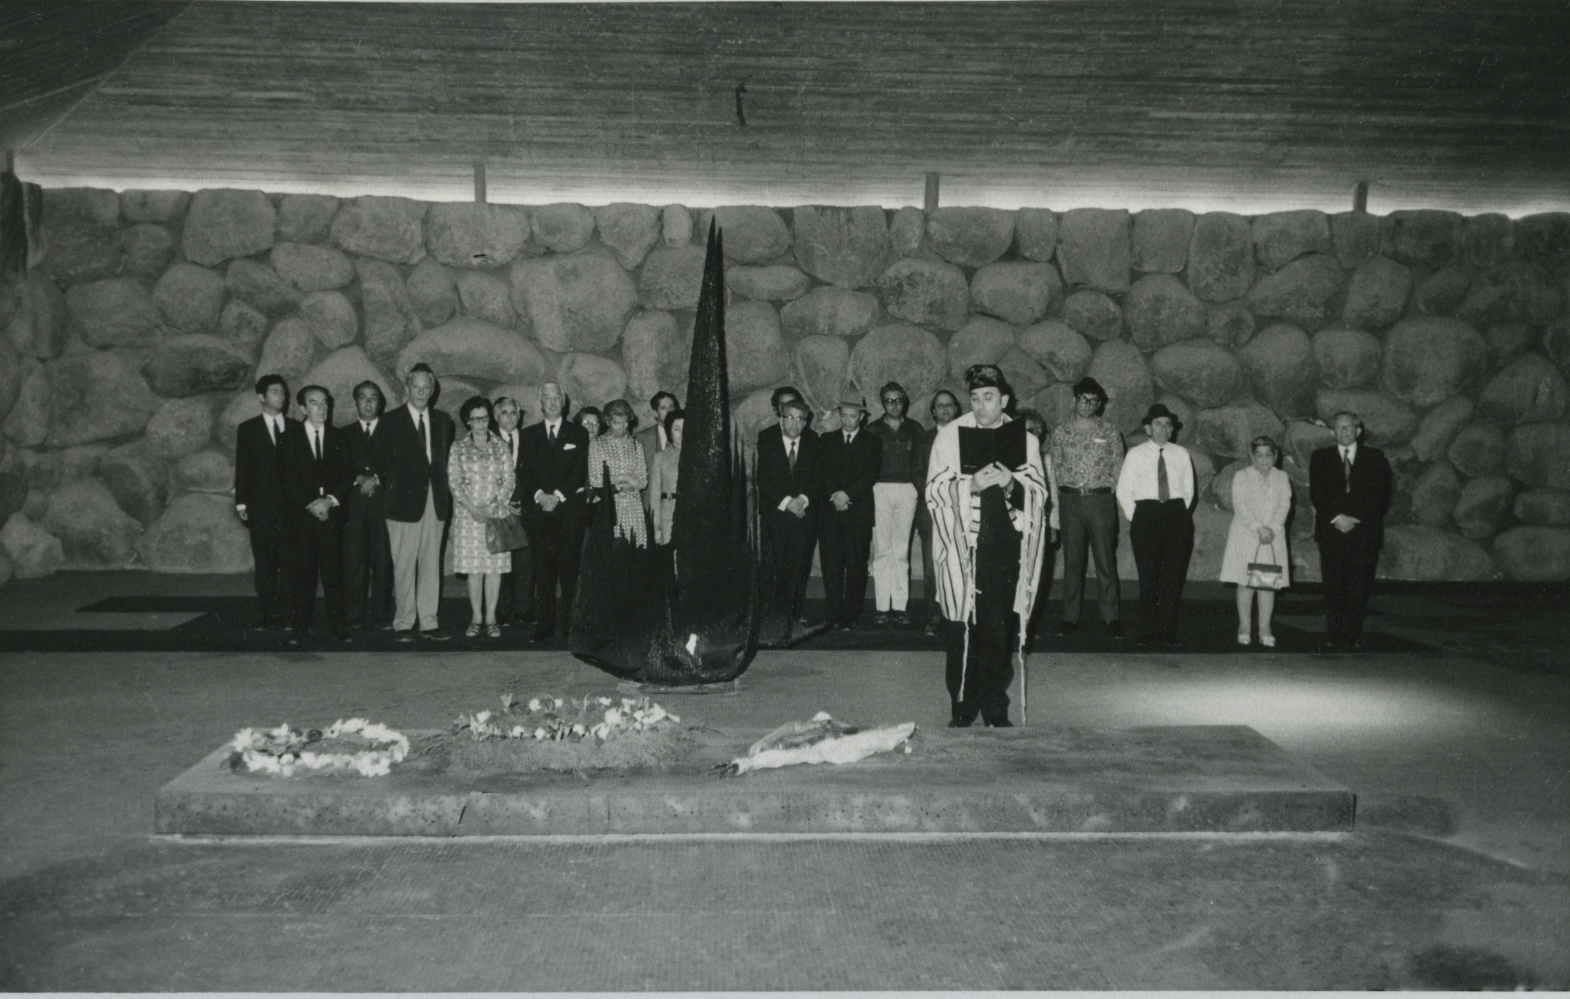 Ceremony in Honor of Sara Salkahazi in the Hall of Remembrance. Yad Vashem, 02.04.1972